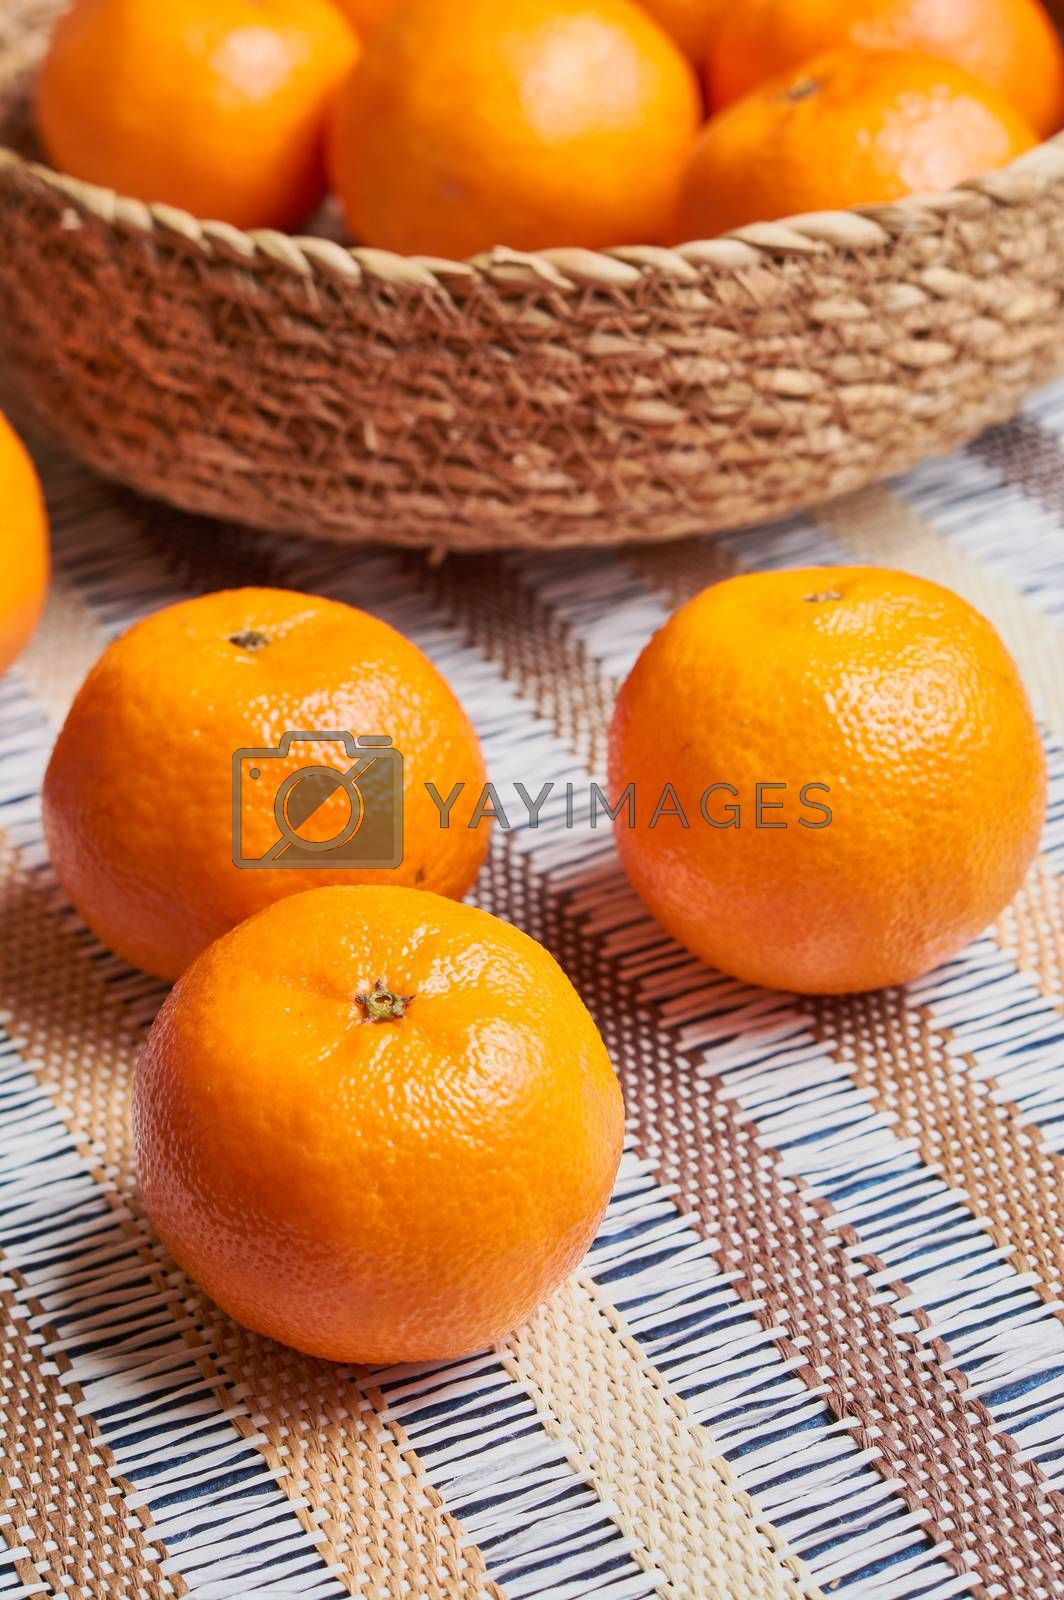 tangerine basket with artisan tablecloth background by Prf_photo